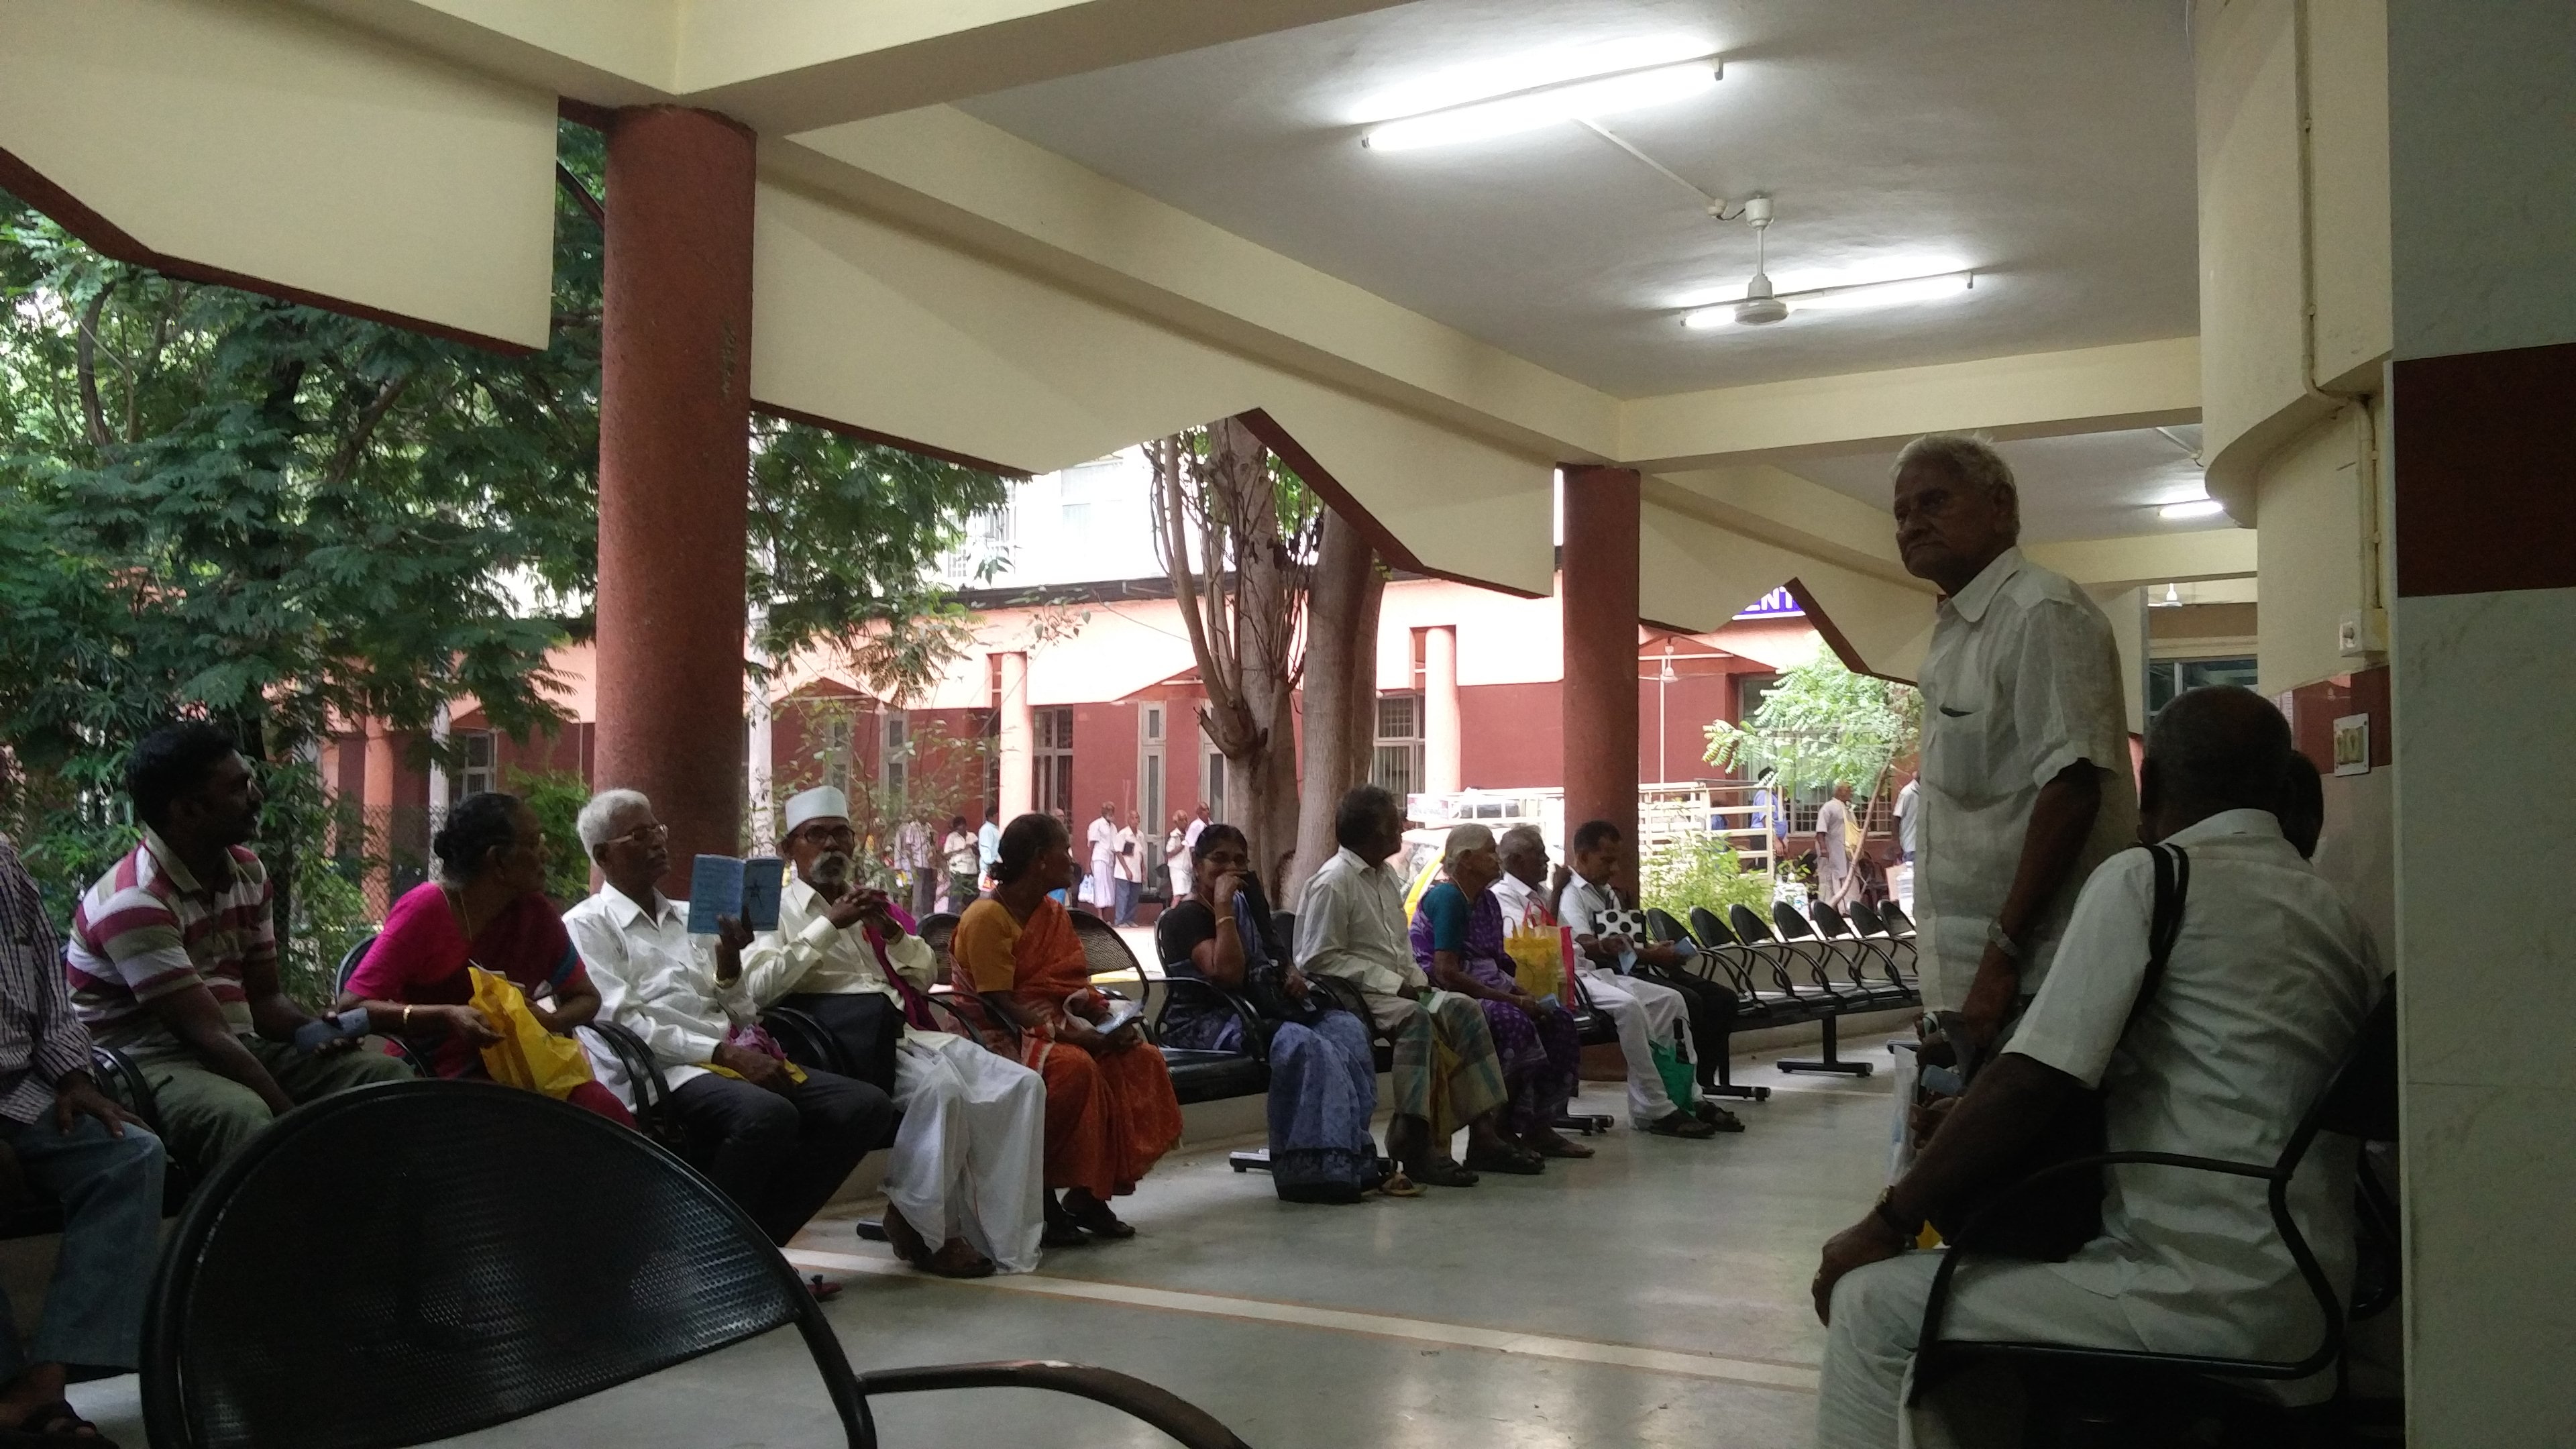 Patients and visitors at the National Institute of Siddha. (Photo: Vinita Govindarajan)